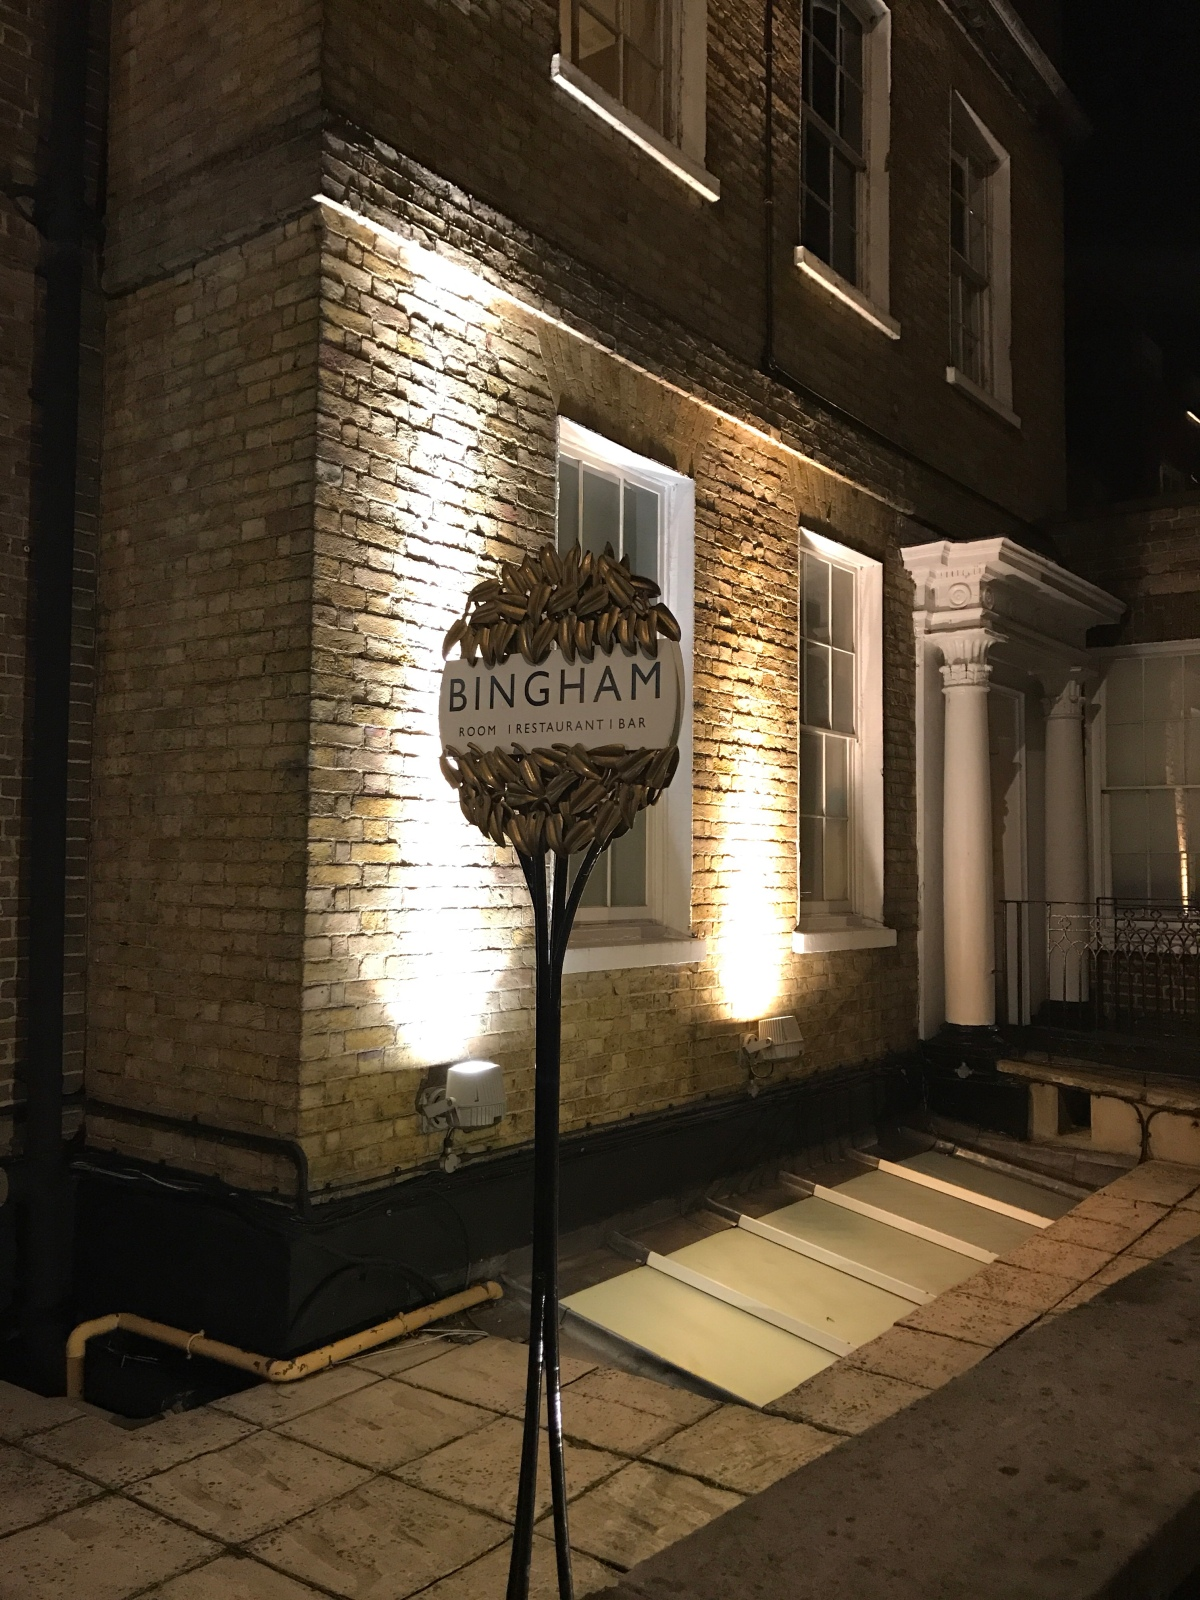 Restaurant Review: The Bingham